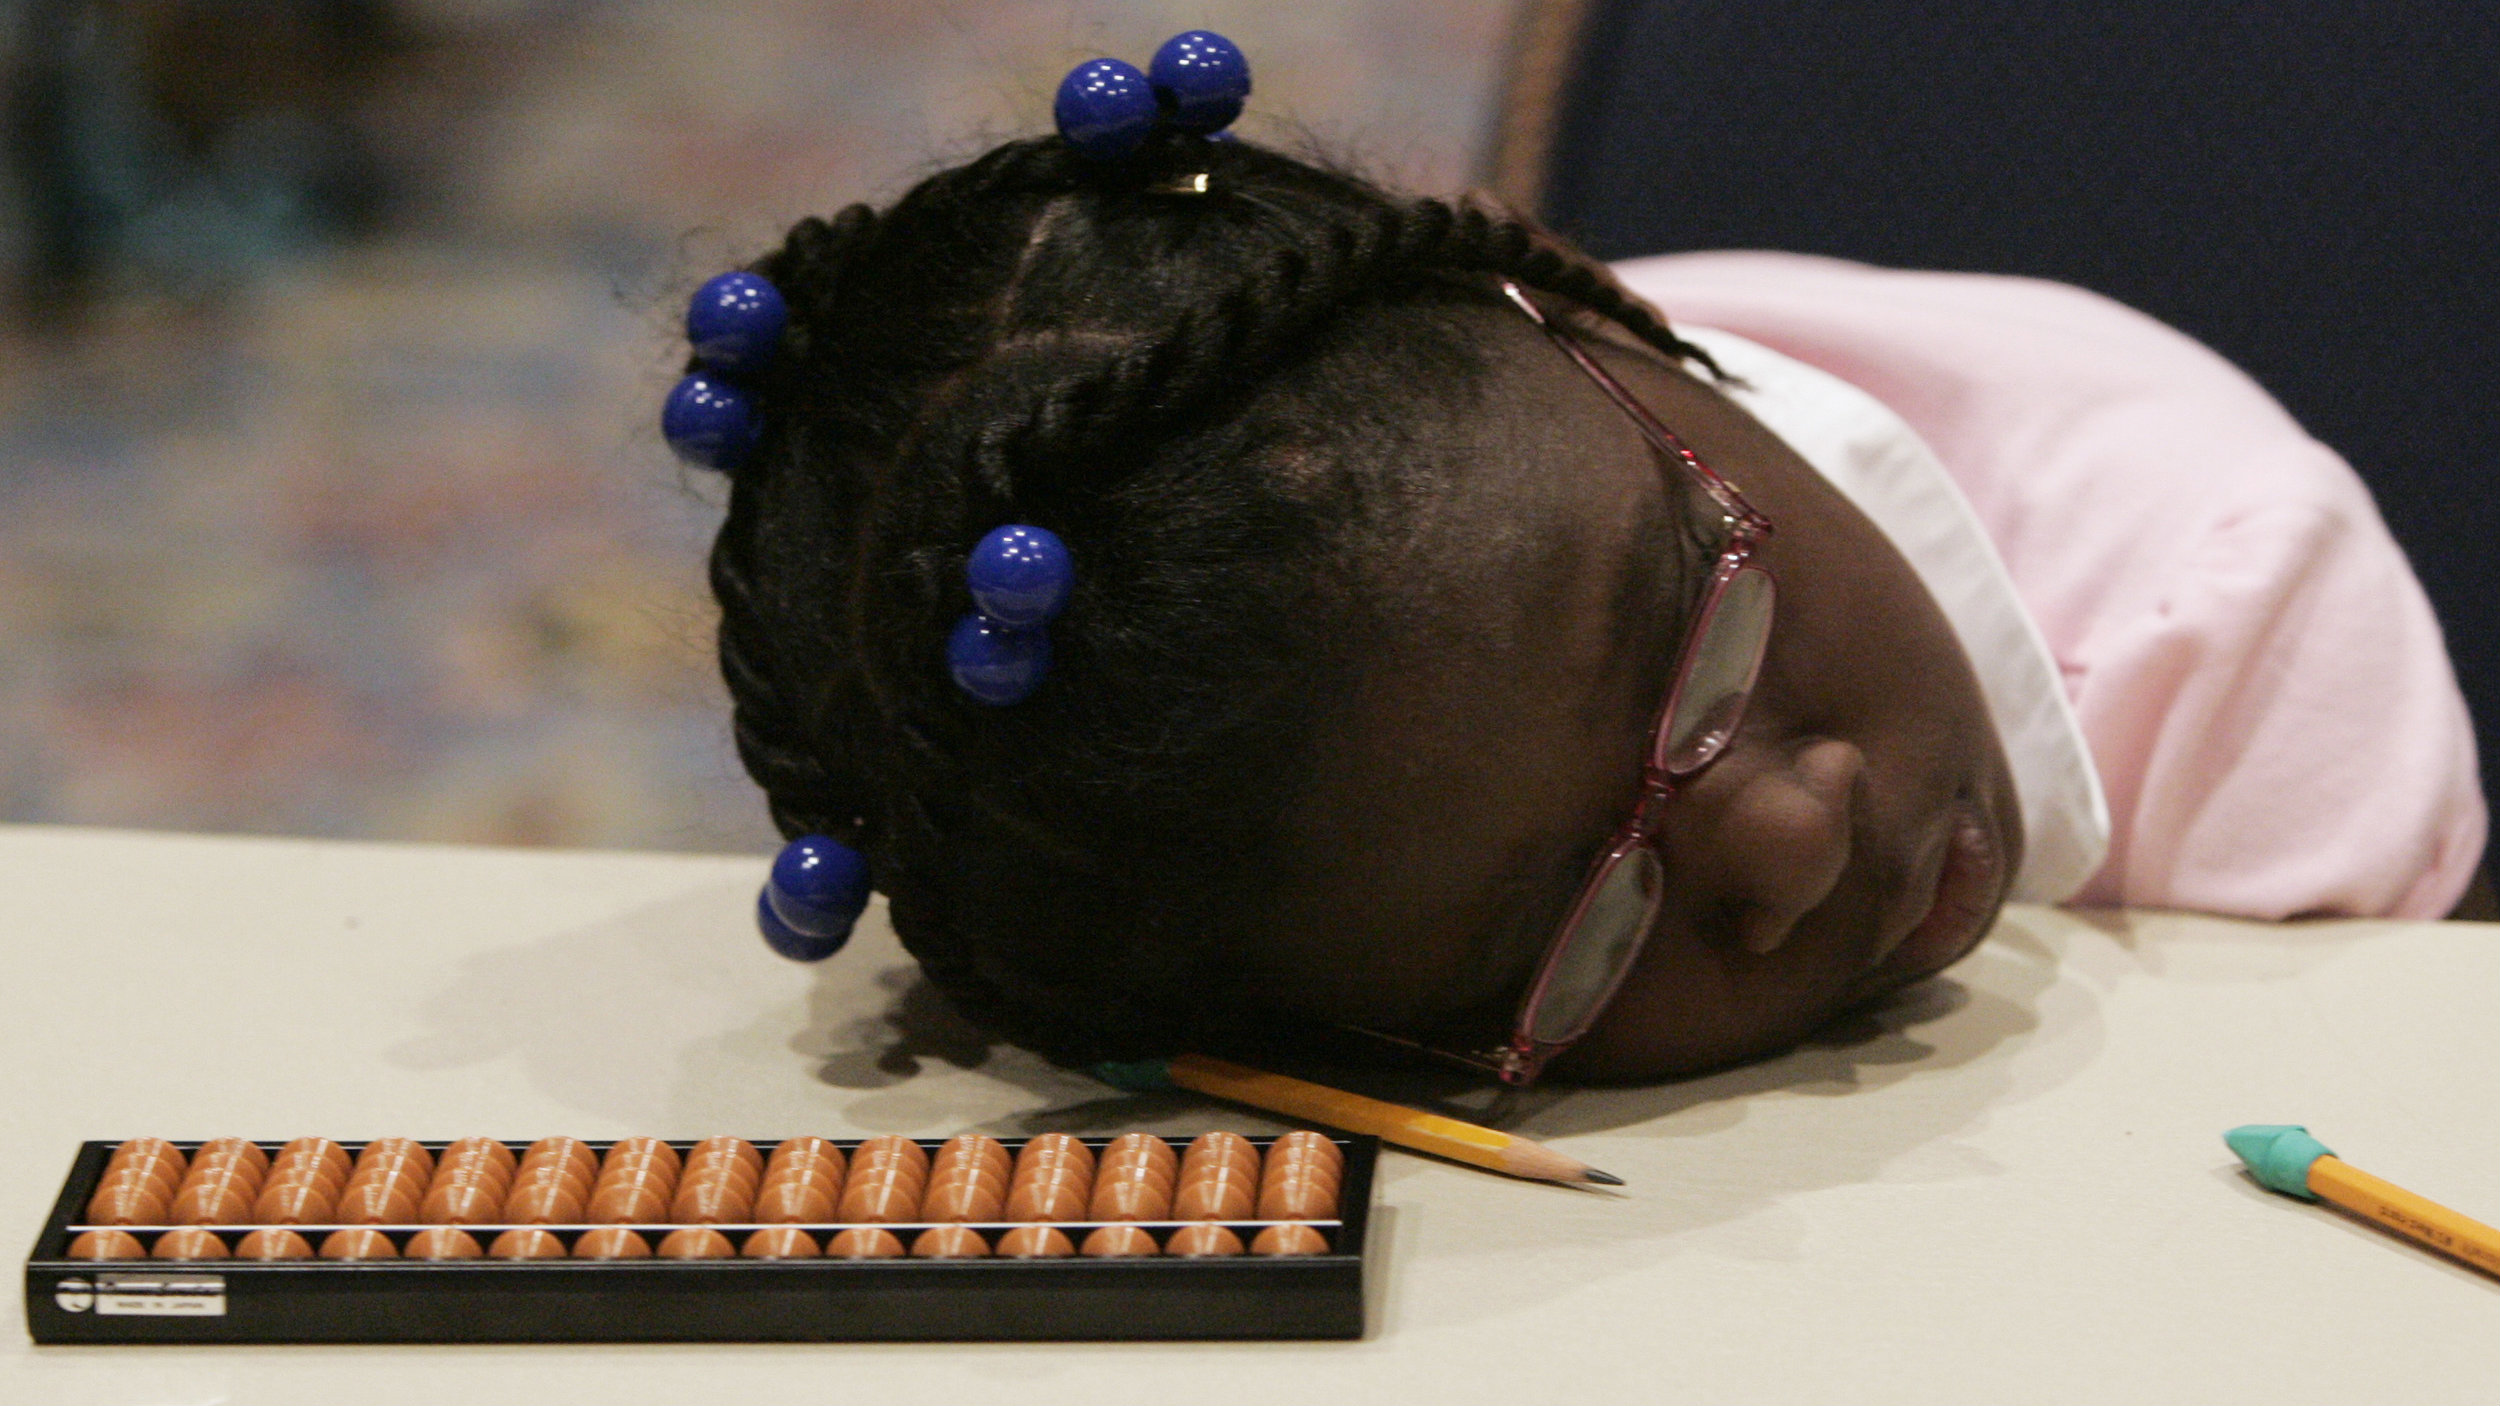 An elementary schoolgirl rests next to a traditional Japanese calculating tool called the soroban (abacus) during the 26th American school soroban contest in Tokyo May 22, 2008. Over 100 children from American schools in U.S. military bases in Japan participated in the competition. REUTERS/Toru Hanai (JAPAN)